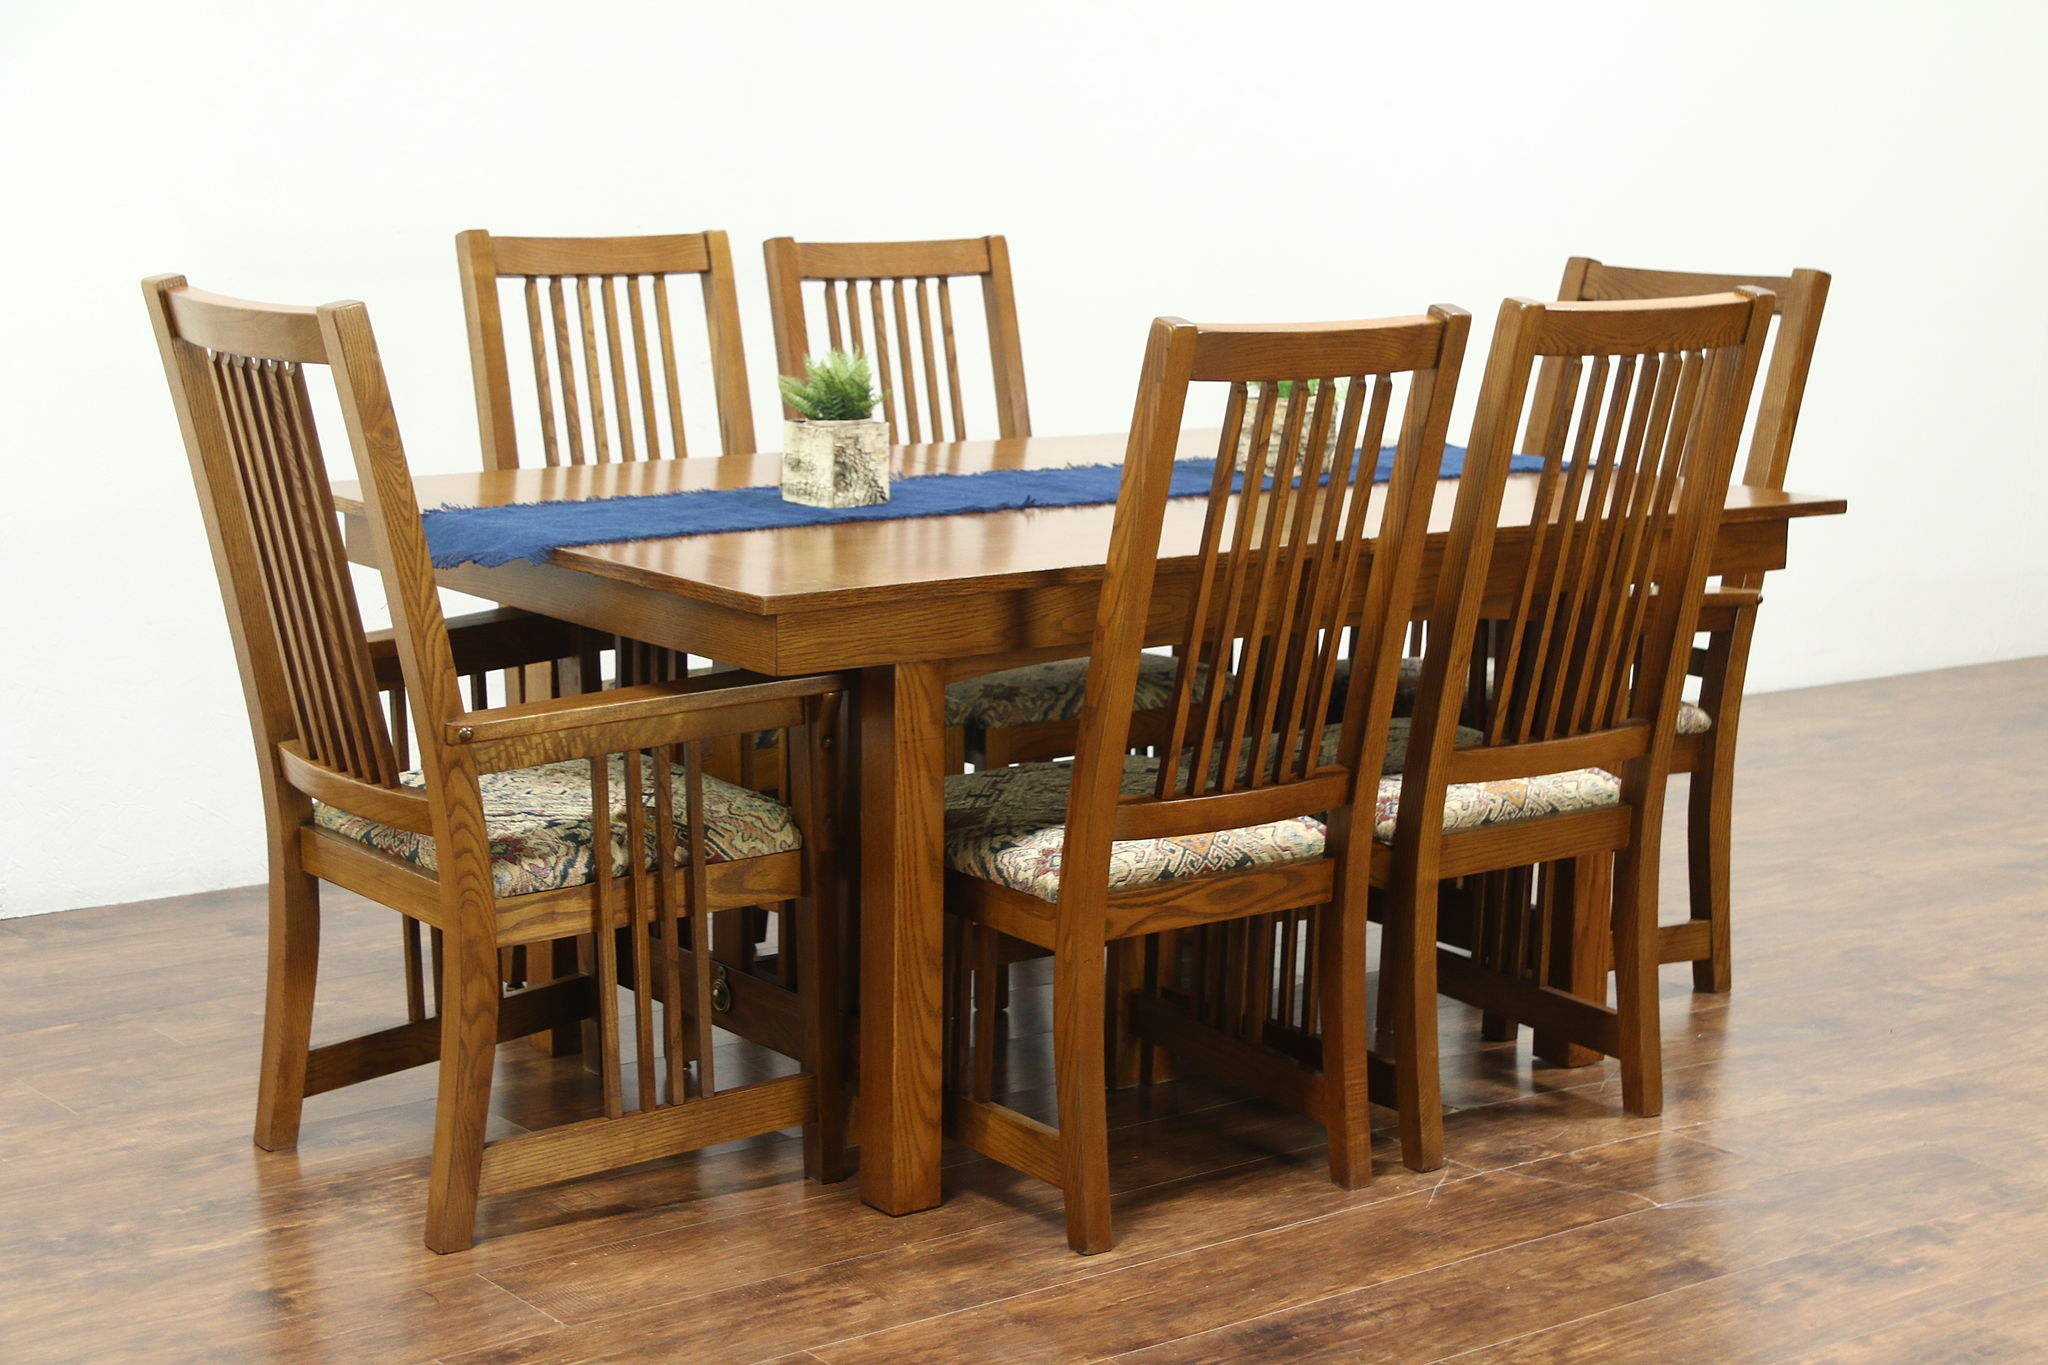 Prairie Or Craftsman Vintage Oak Dining Set, Table, 2 Leaves, 6 Chairs